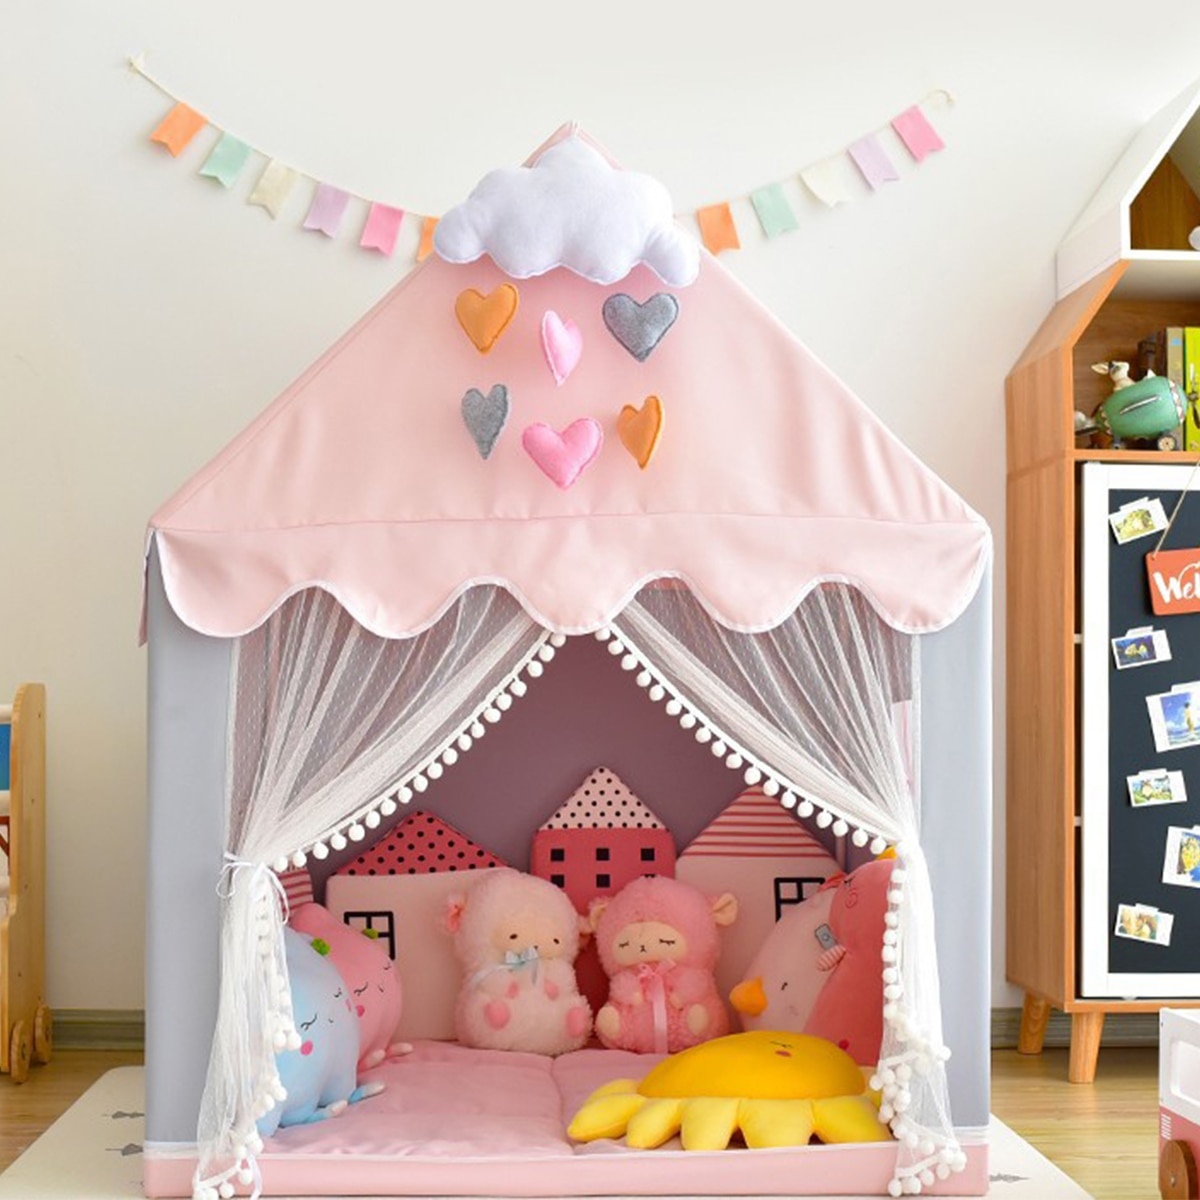 1.3M Children Play Tent Princess Castle House Game Room Cartoon Easy Assemble Playhouse Tent Toys Gifts